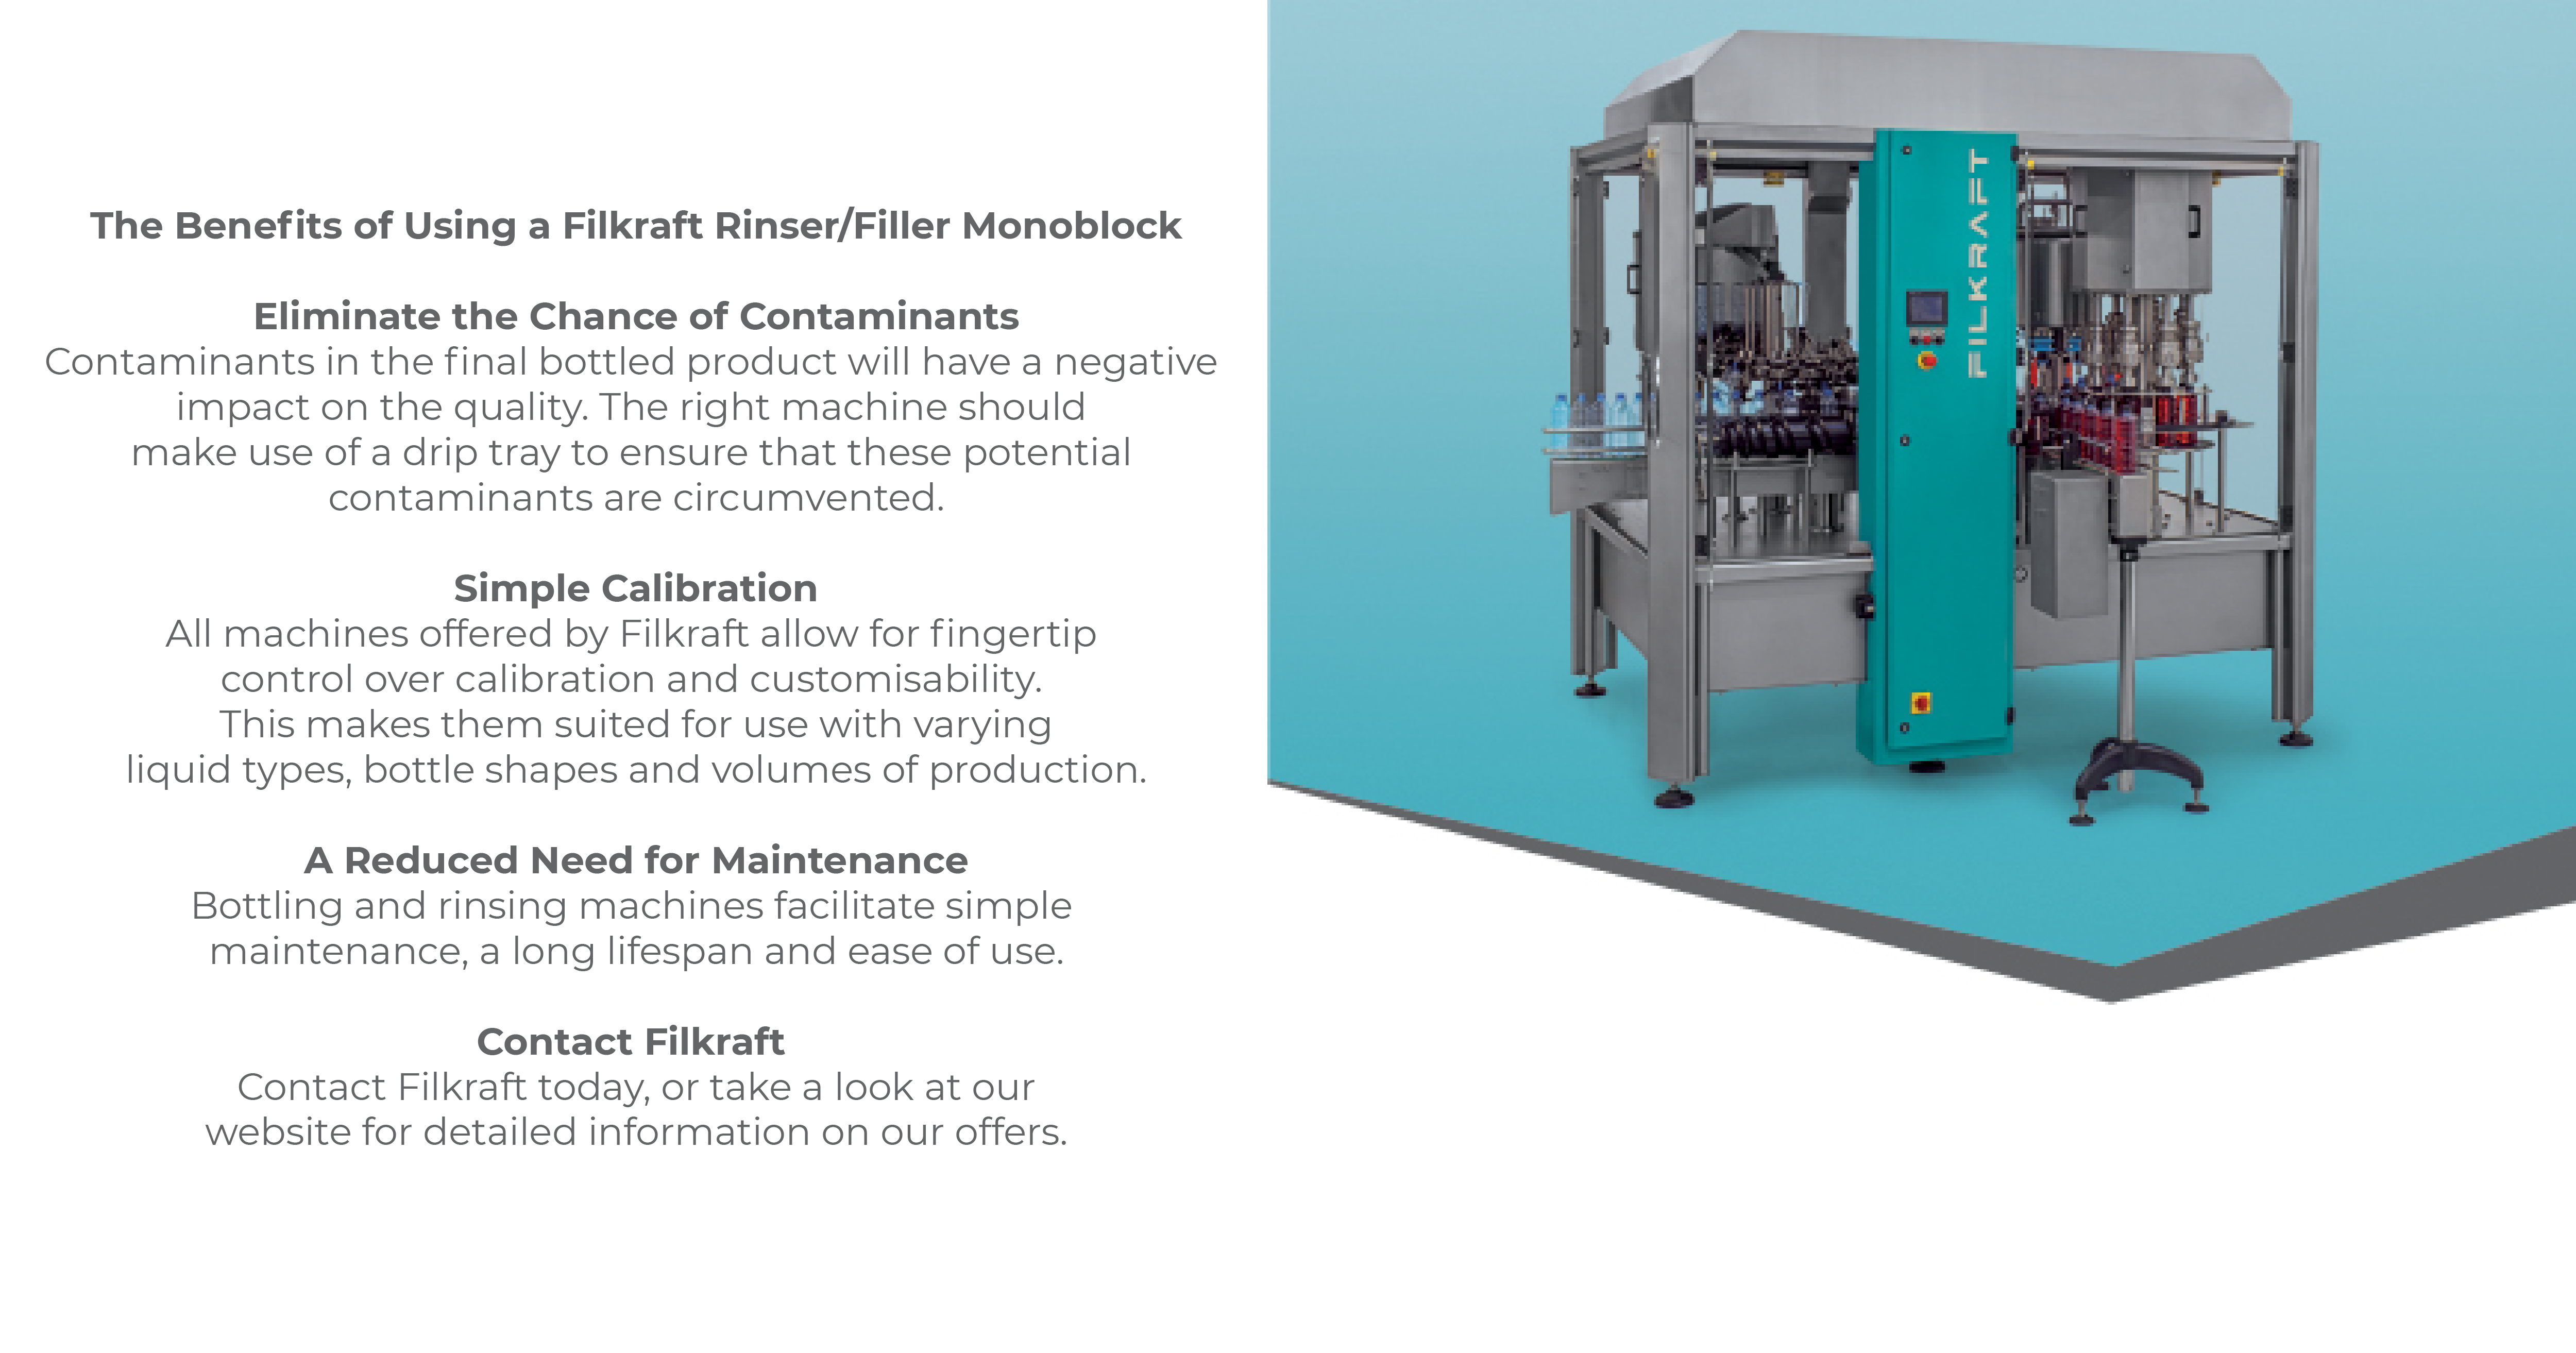 The Benefits of Using a Filkraft Rinser/Filler Monoblock